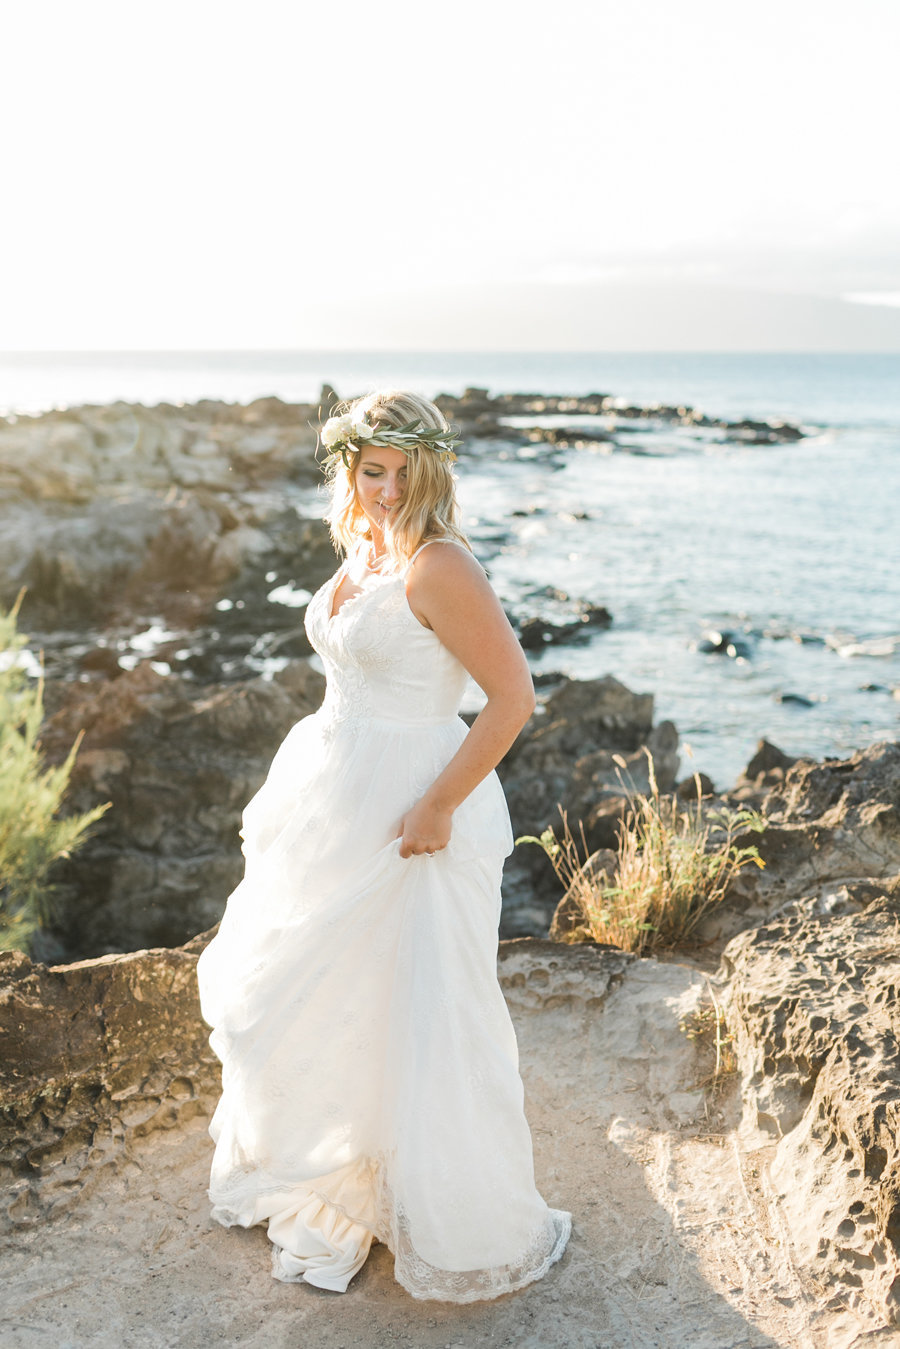 The-Ritz-Carlton-Kapalua-Maui-Wedding-Caitlin-Cathey-Photo-079